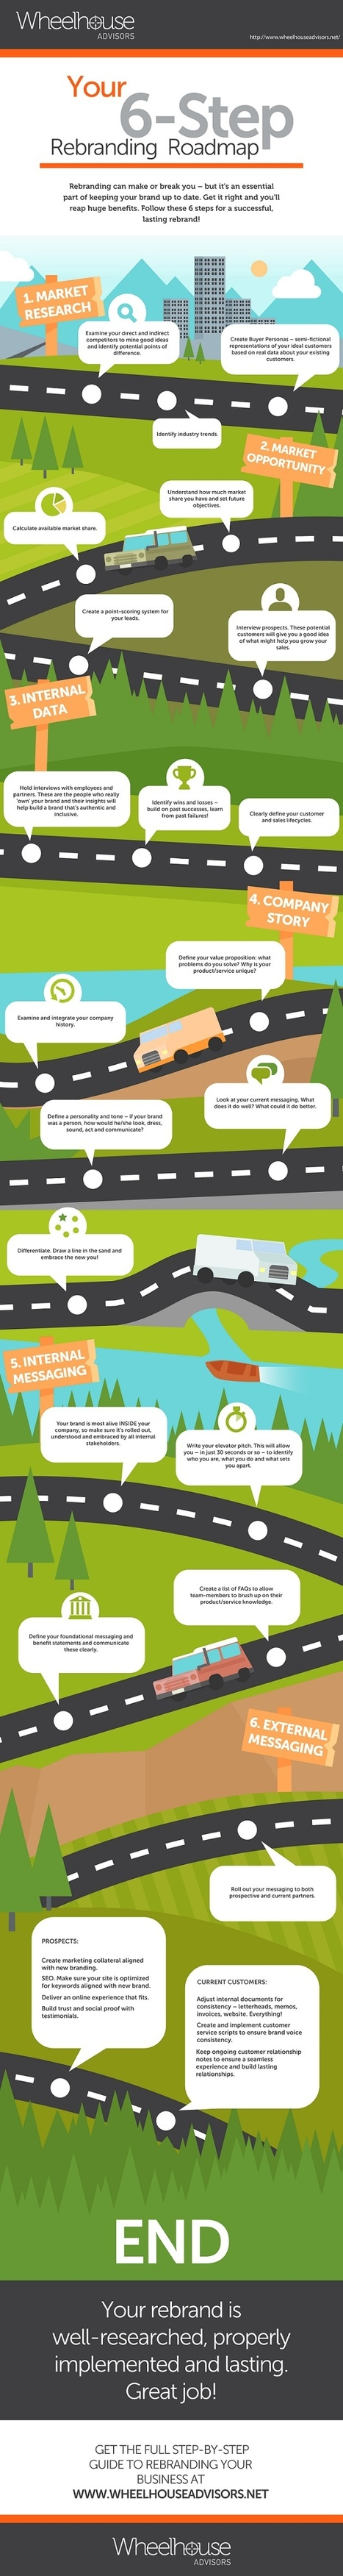 Your Six-Step Road Map to Rebranding [Infographic] | Integrated Brand Communications | Scoop.it